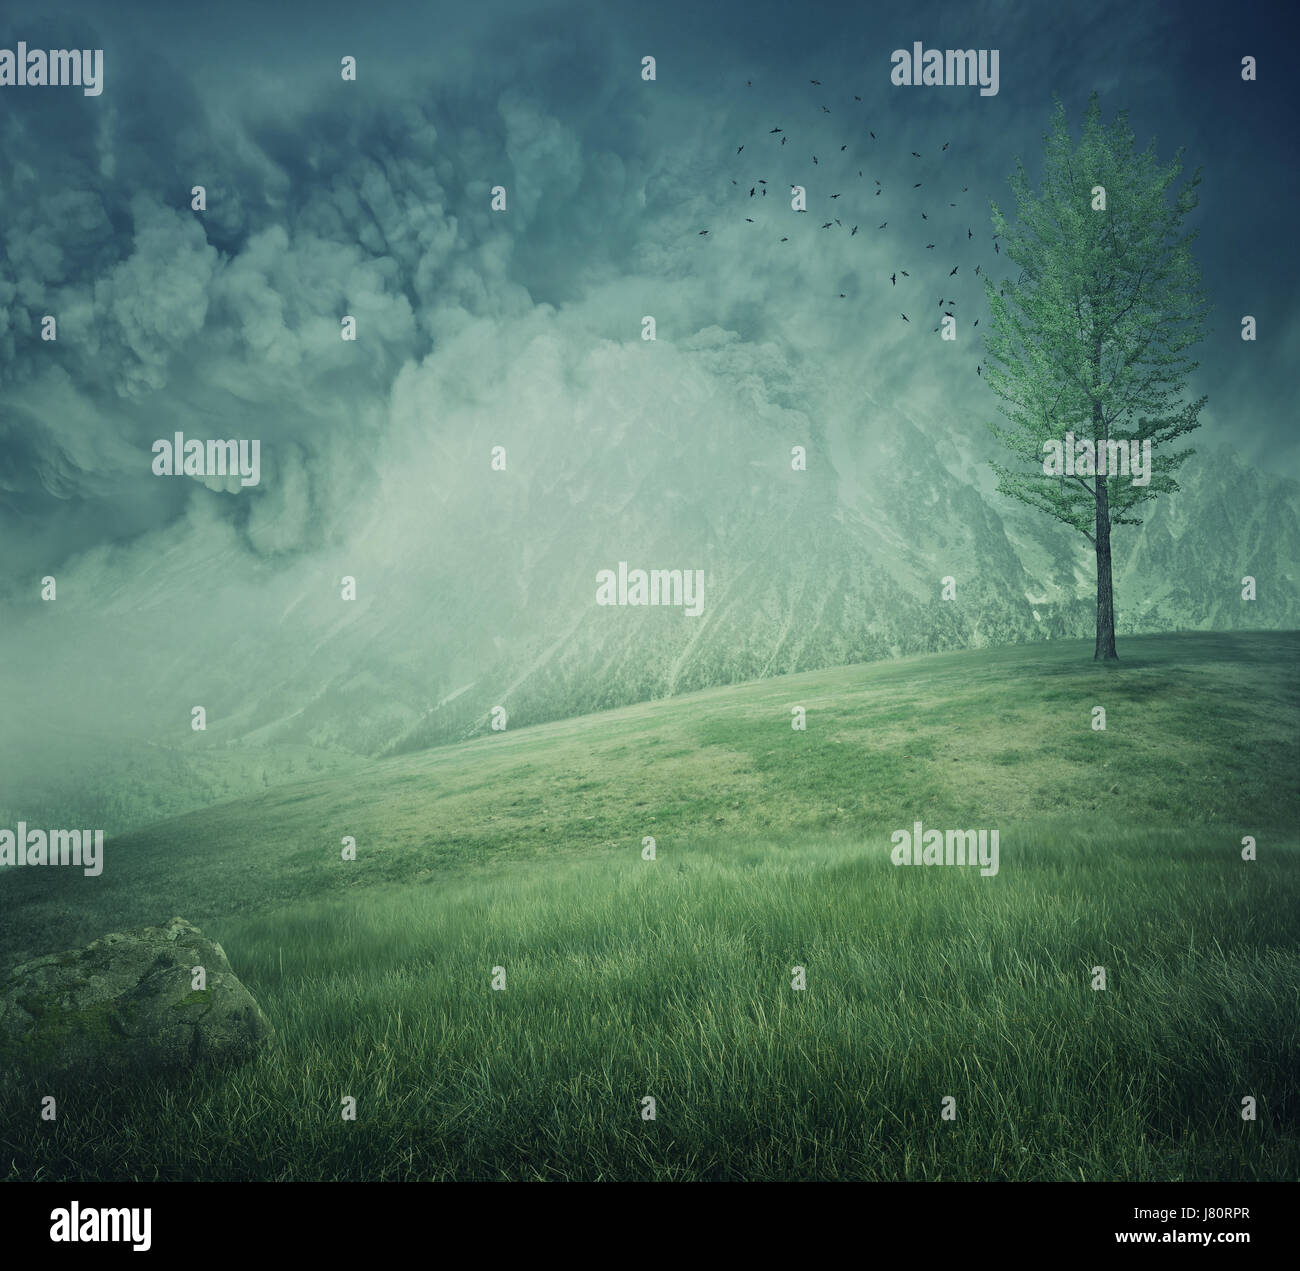 Mystycal mountain landscape with misty hills, green grass and a lone tree on the top. Beautiful and fresh background. - Stock Image